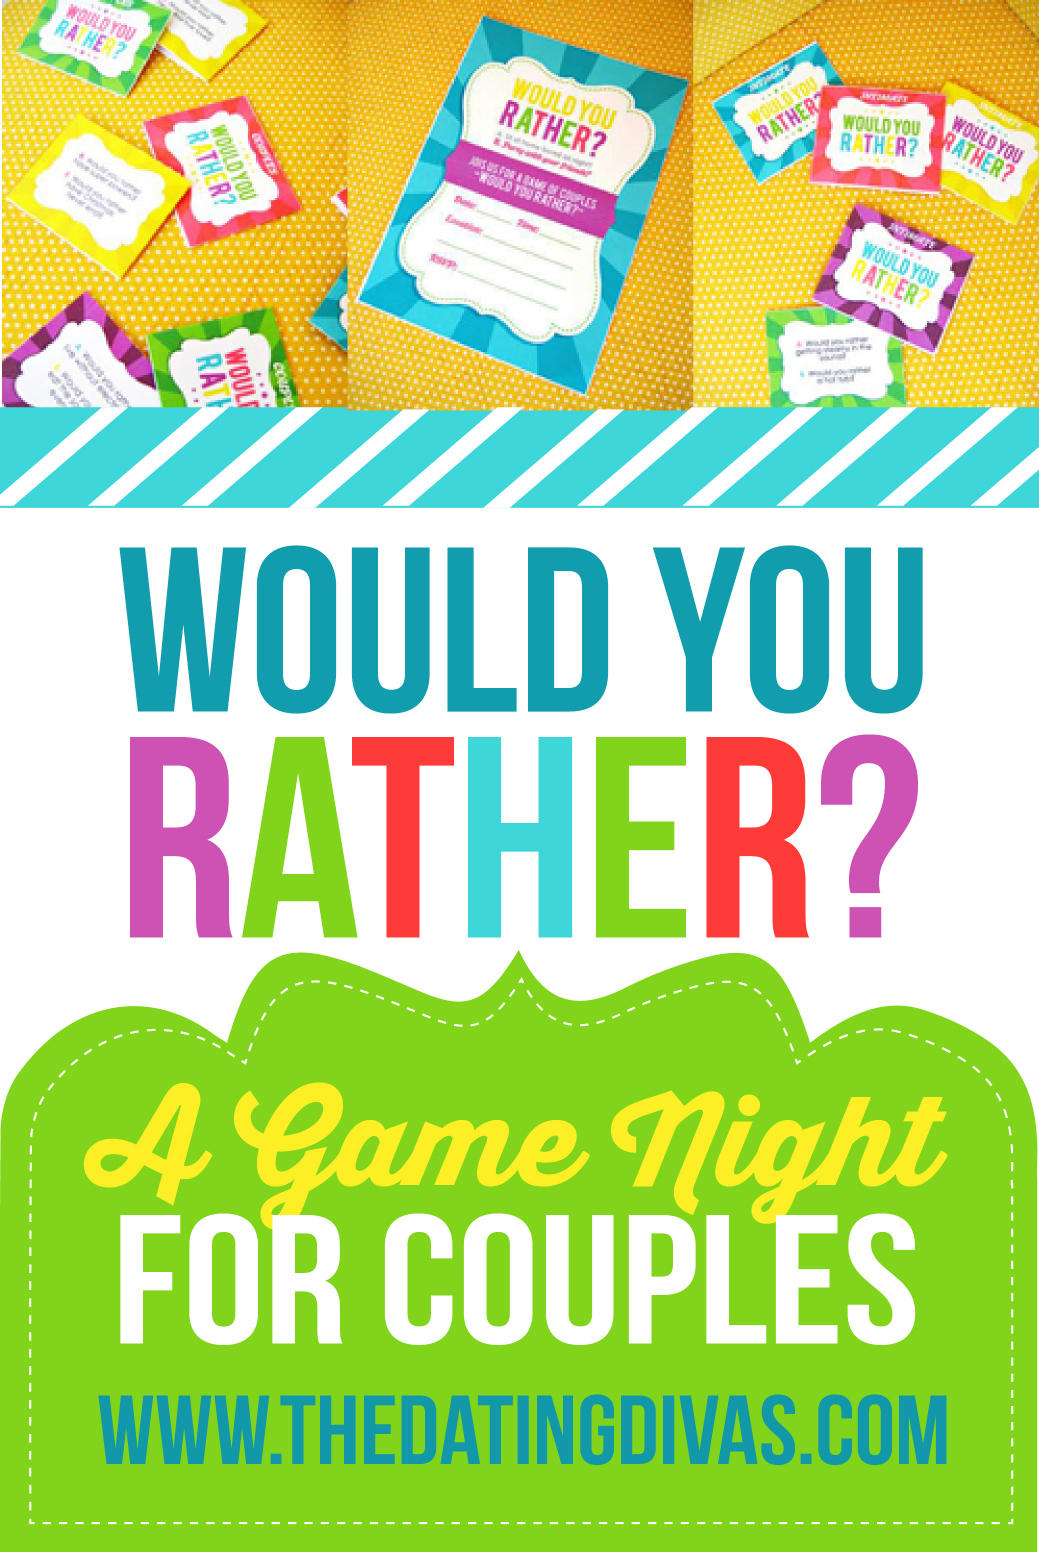 Would you Rather (pinterest picture) (1)